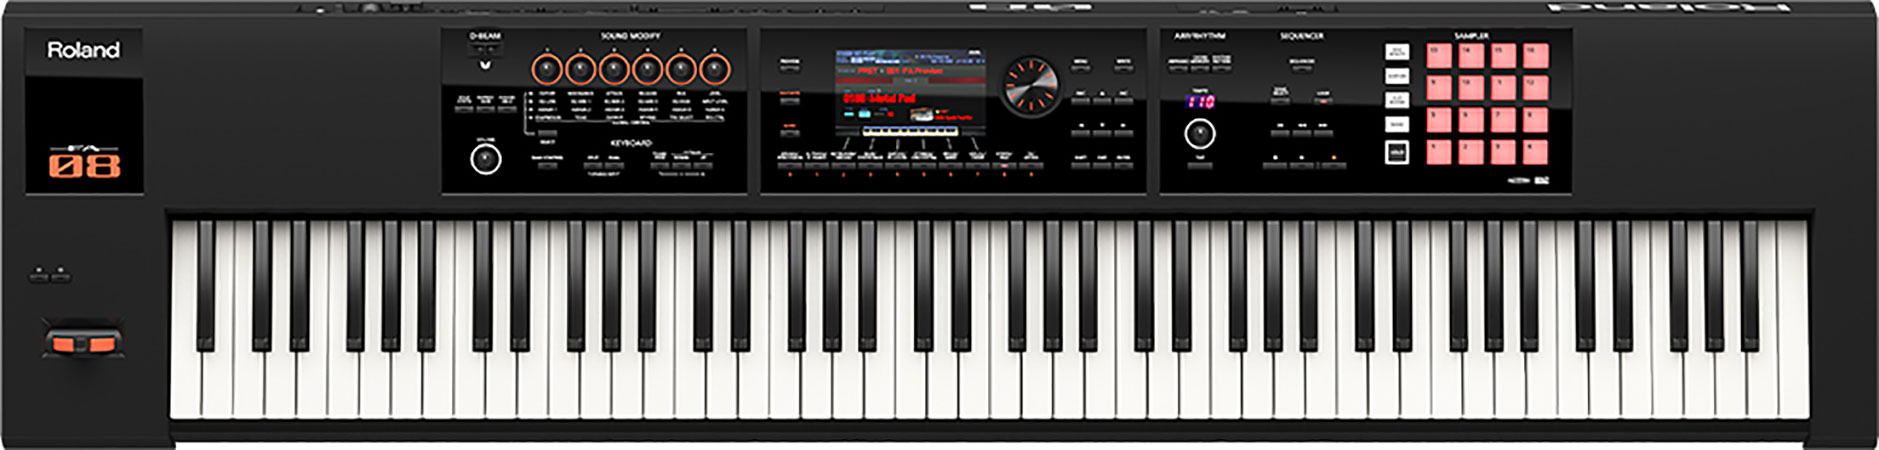 Roland FA-08 Workstation